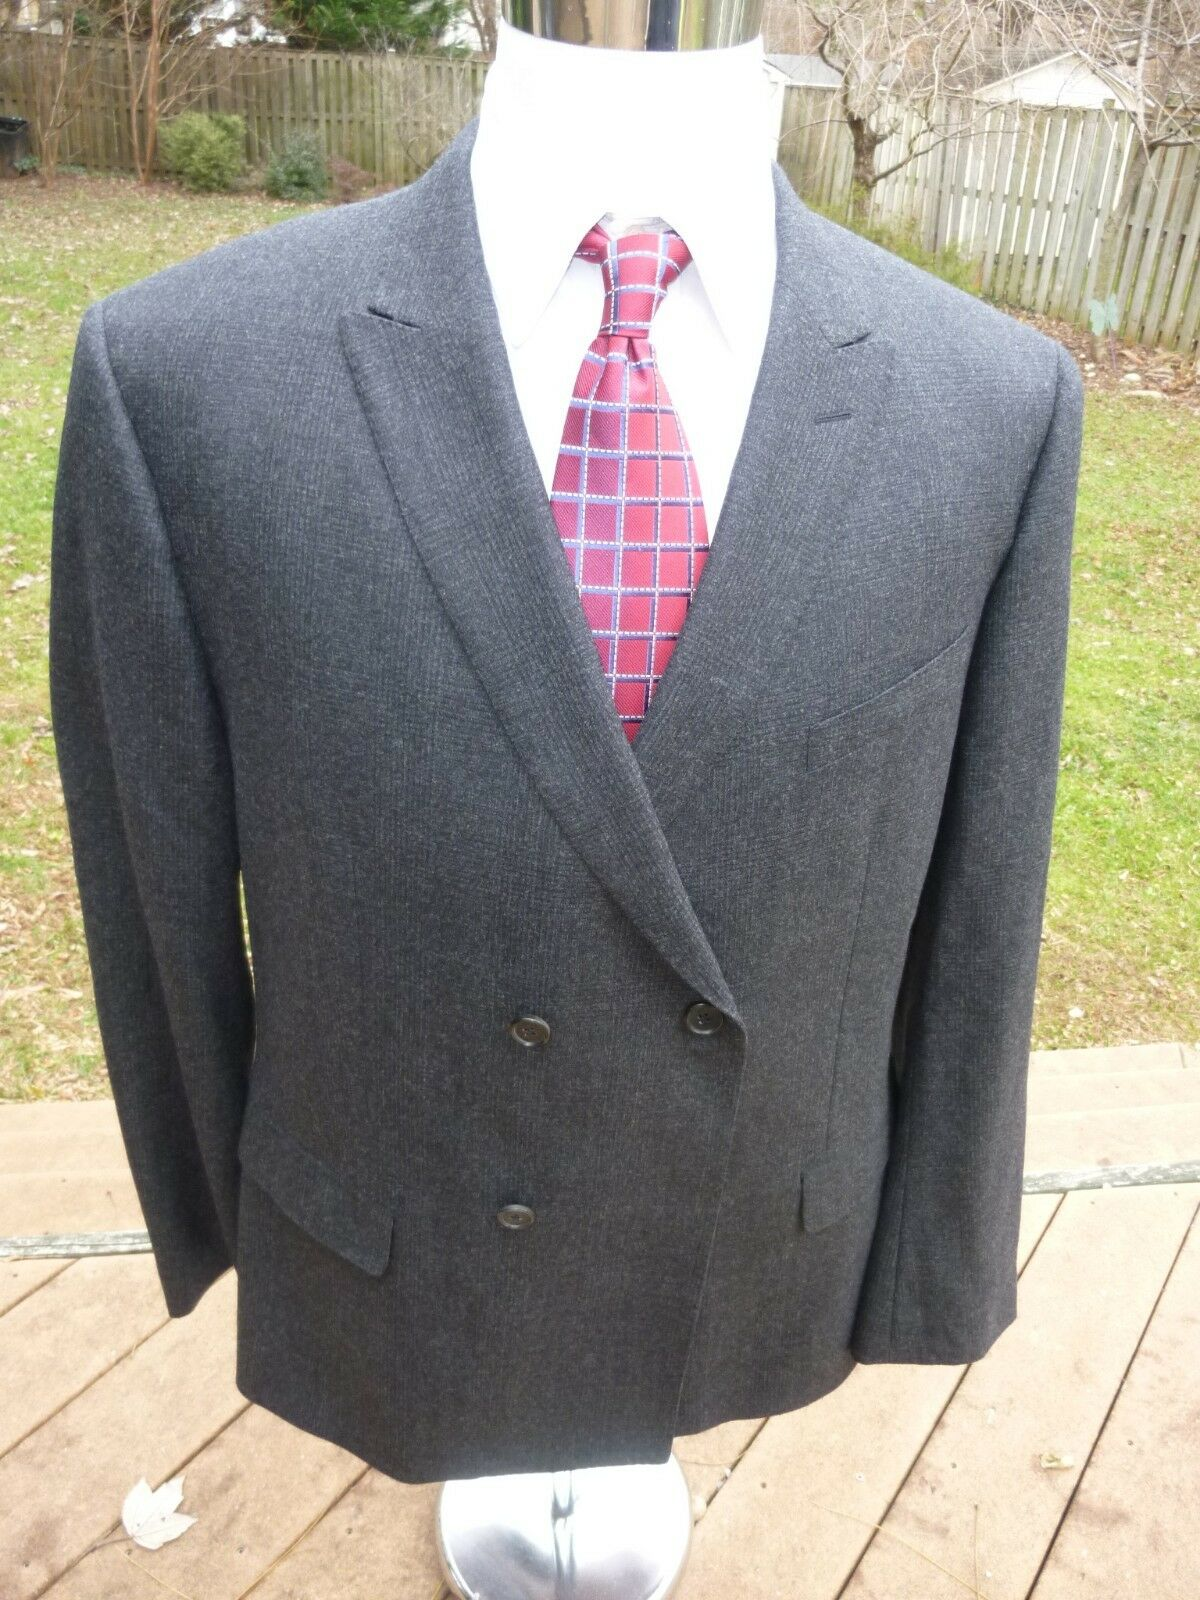 NEW  Banana Republic Monogram CHARCOAL DBL Breast Suit 48R Wool 40Wx32 Dual Vent